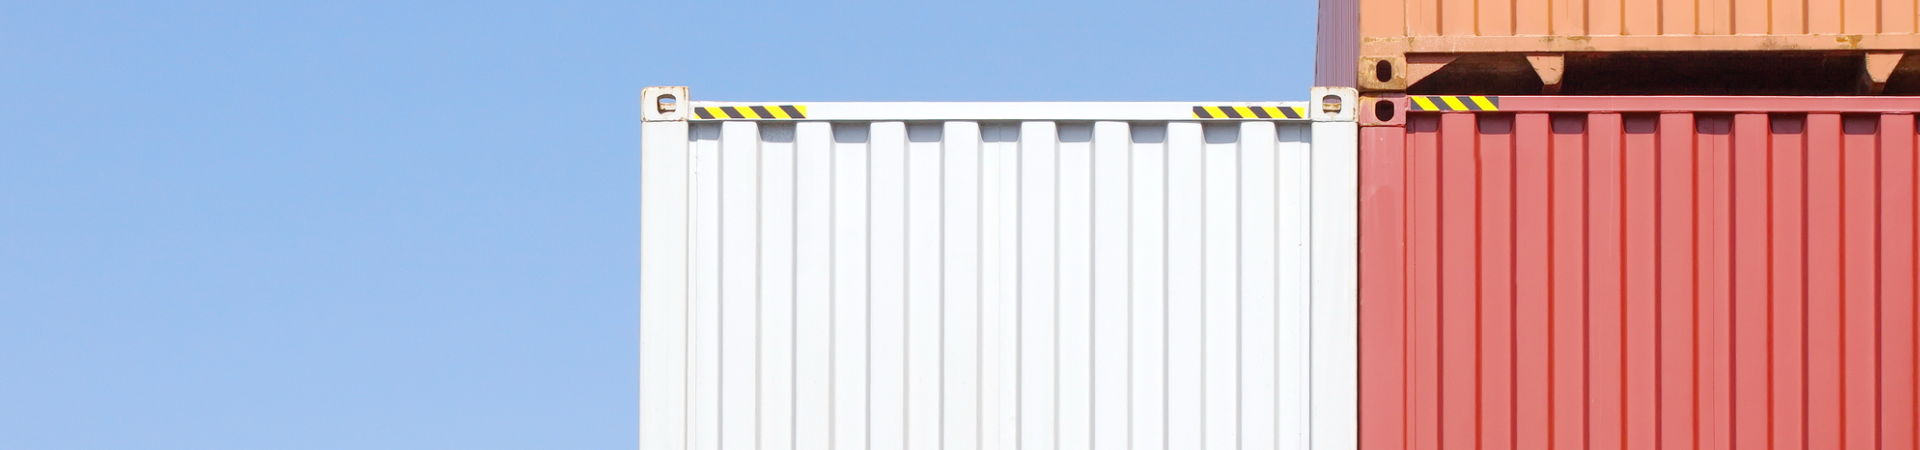 containers_1920x450.png